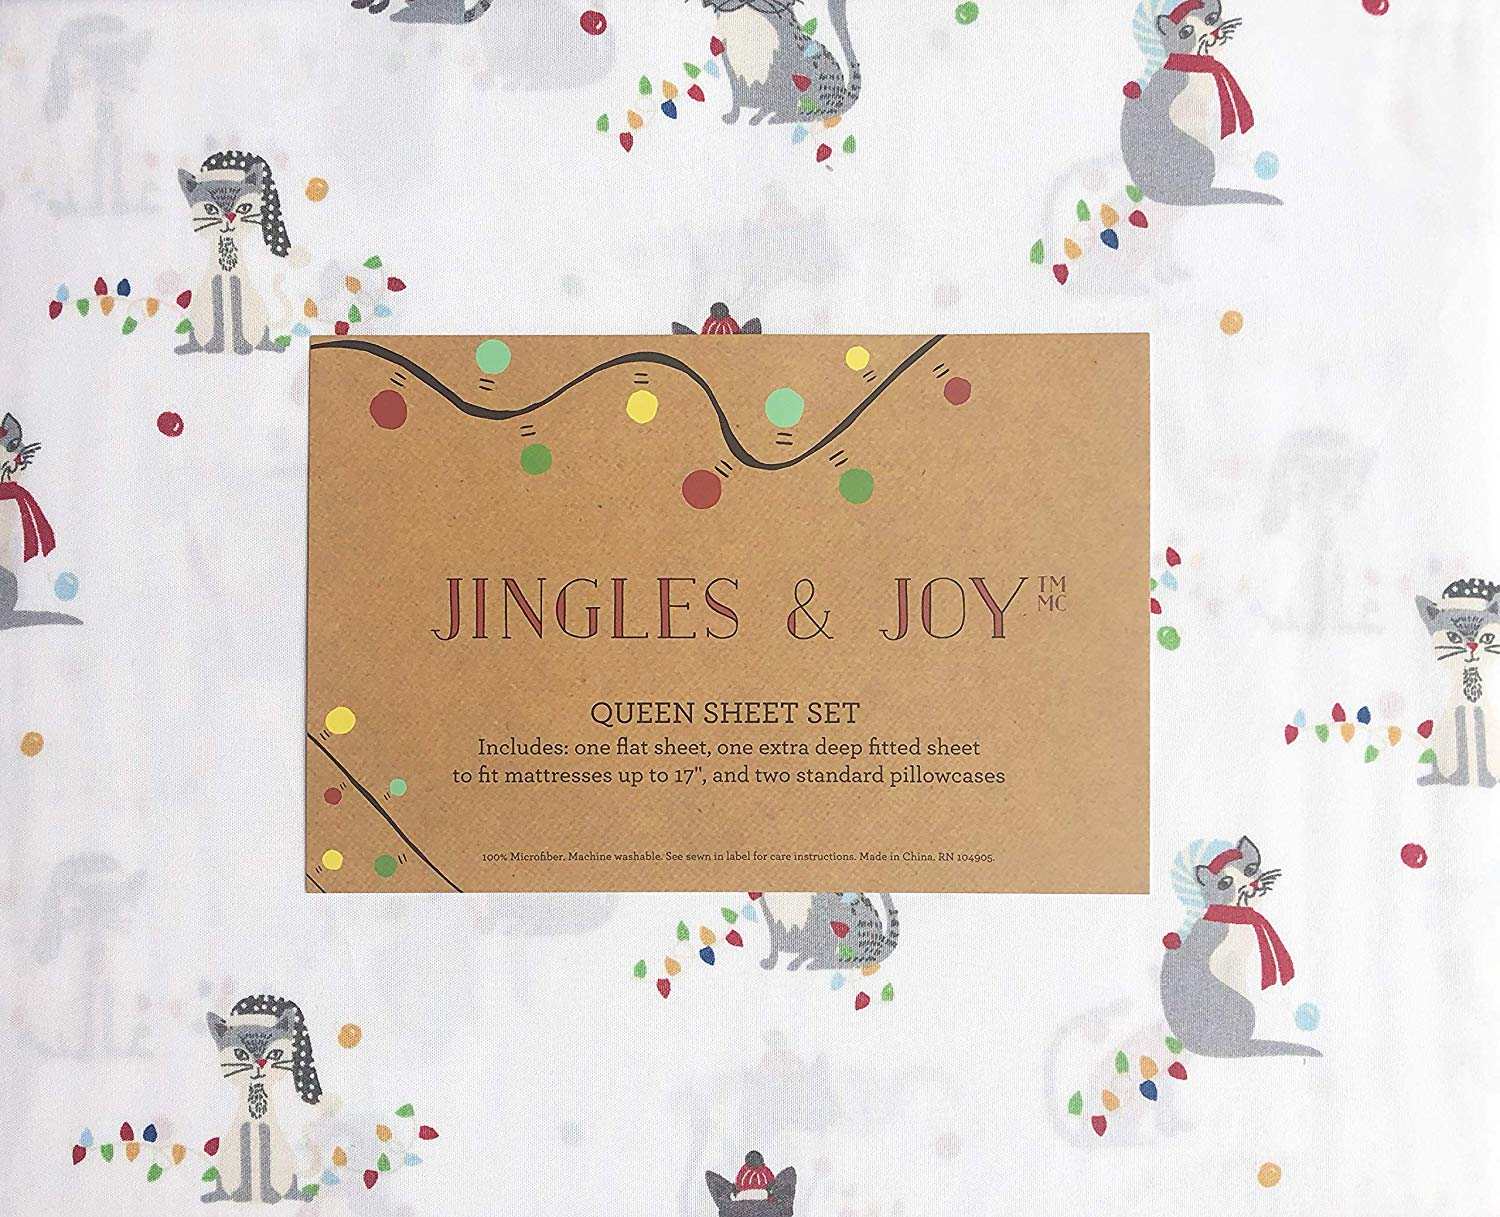 Jingles & Joy Christmas Cat Sheets - Best Christmas Sheets Queen Size